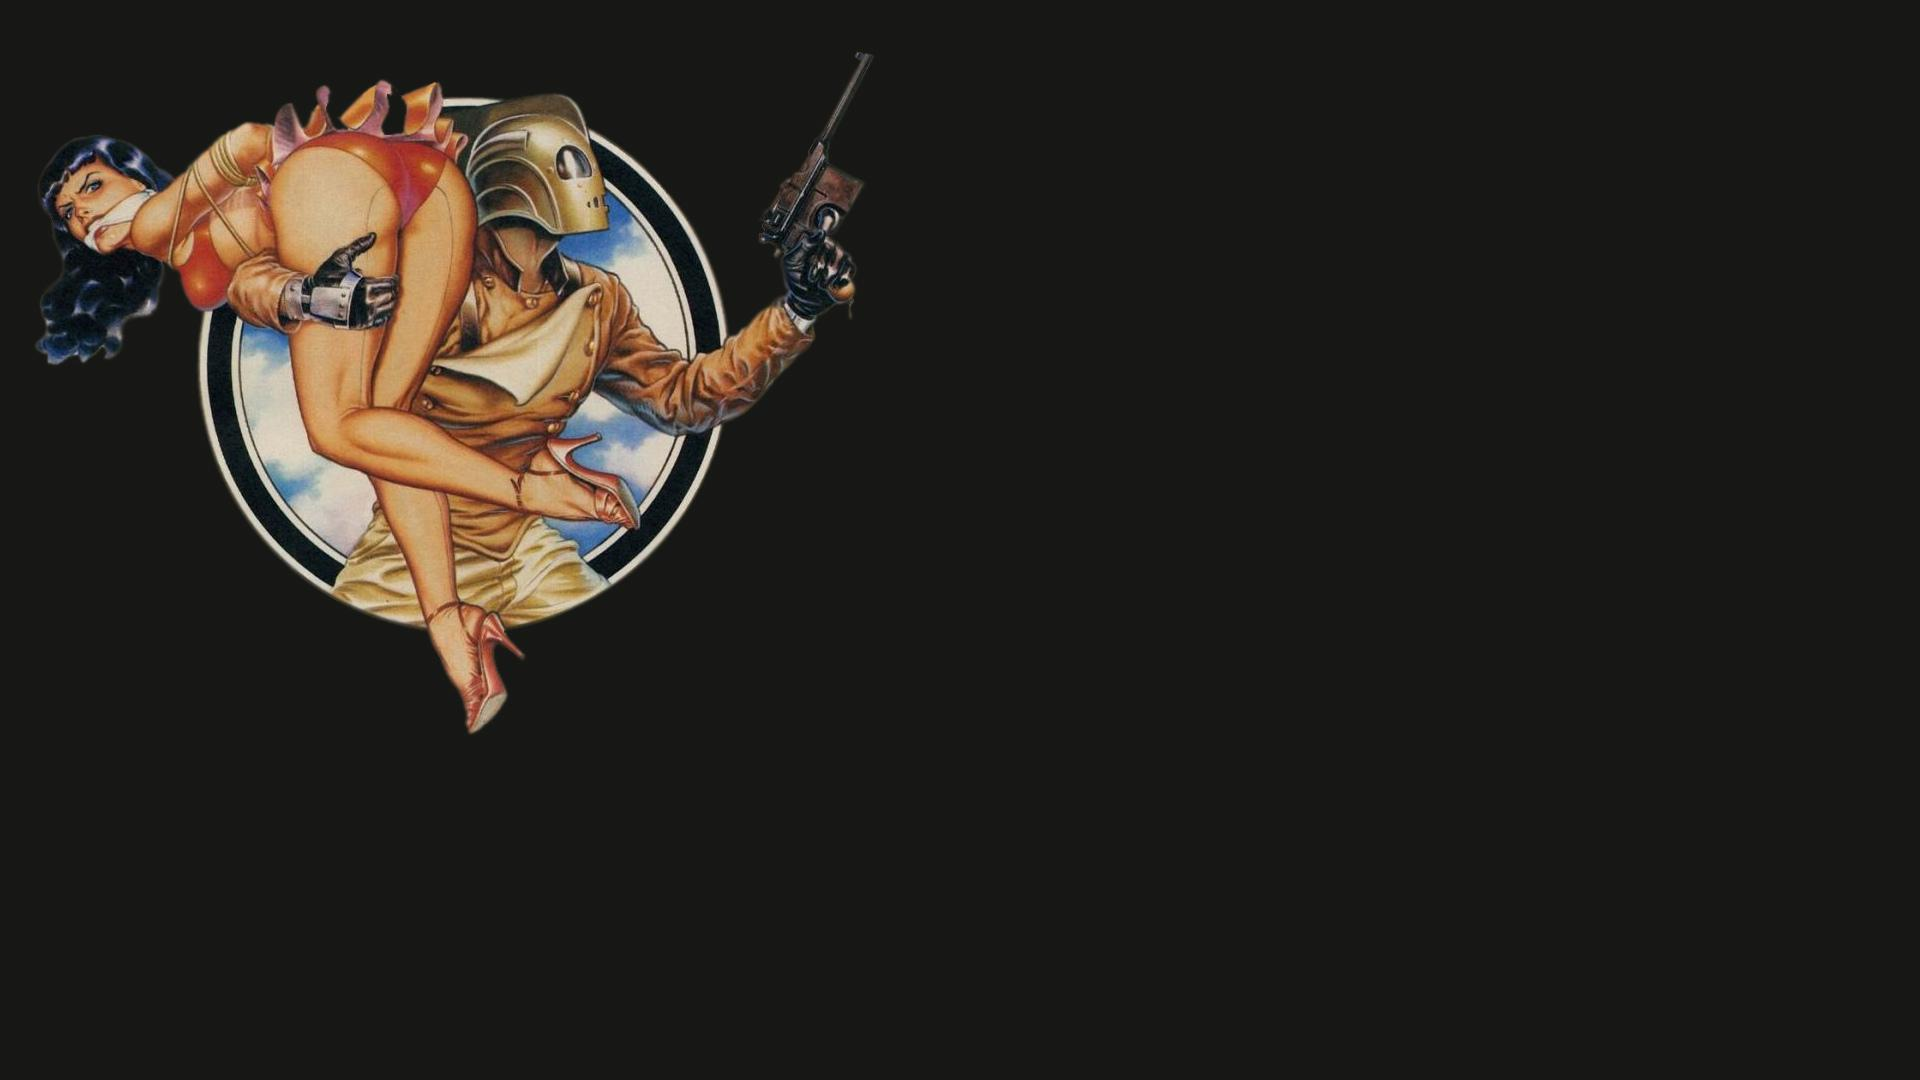 Rocketeer Comics wallpapers HD quality